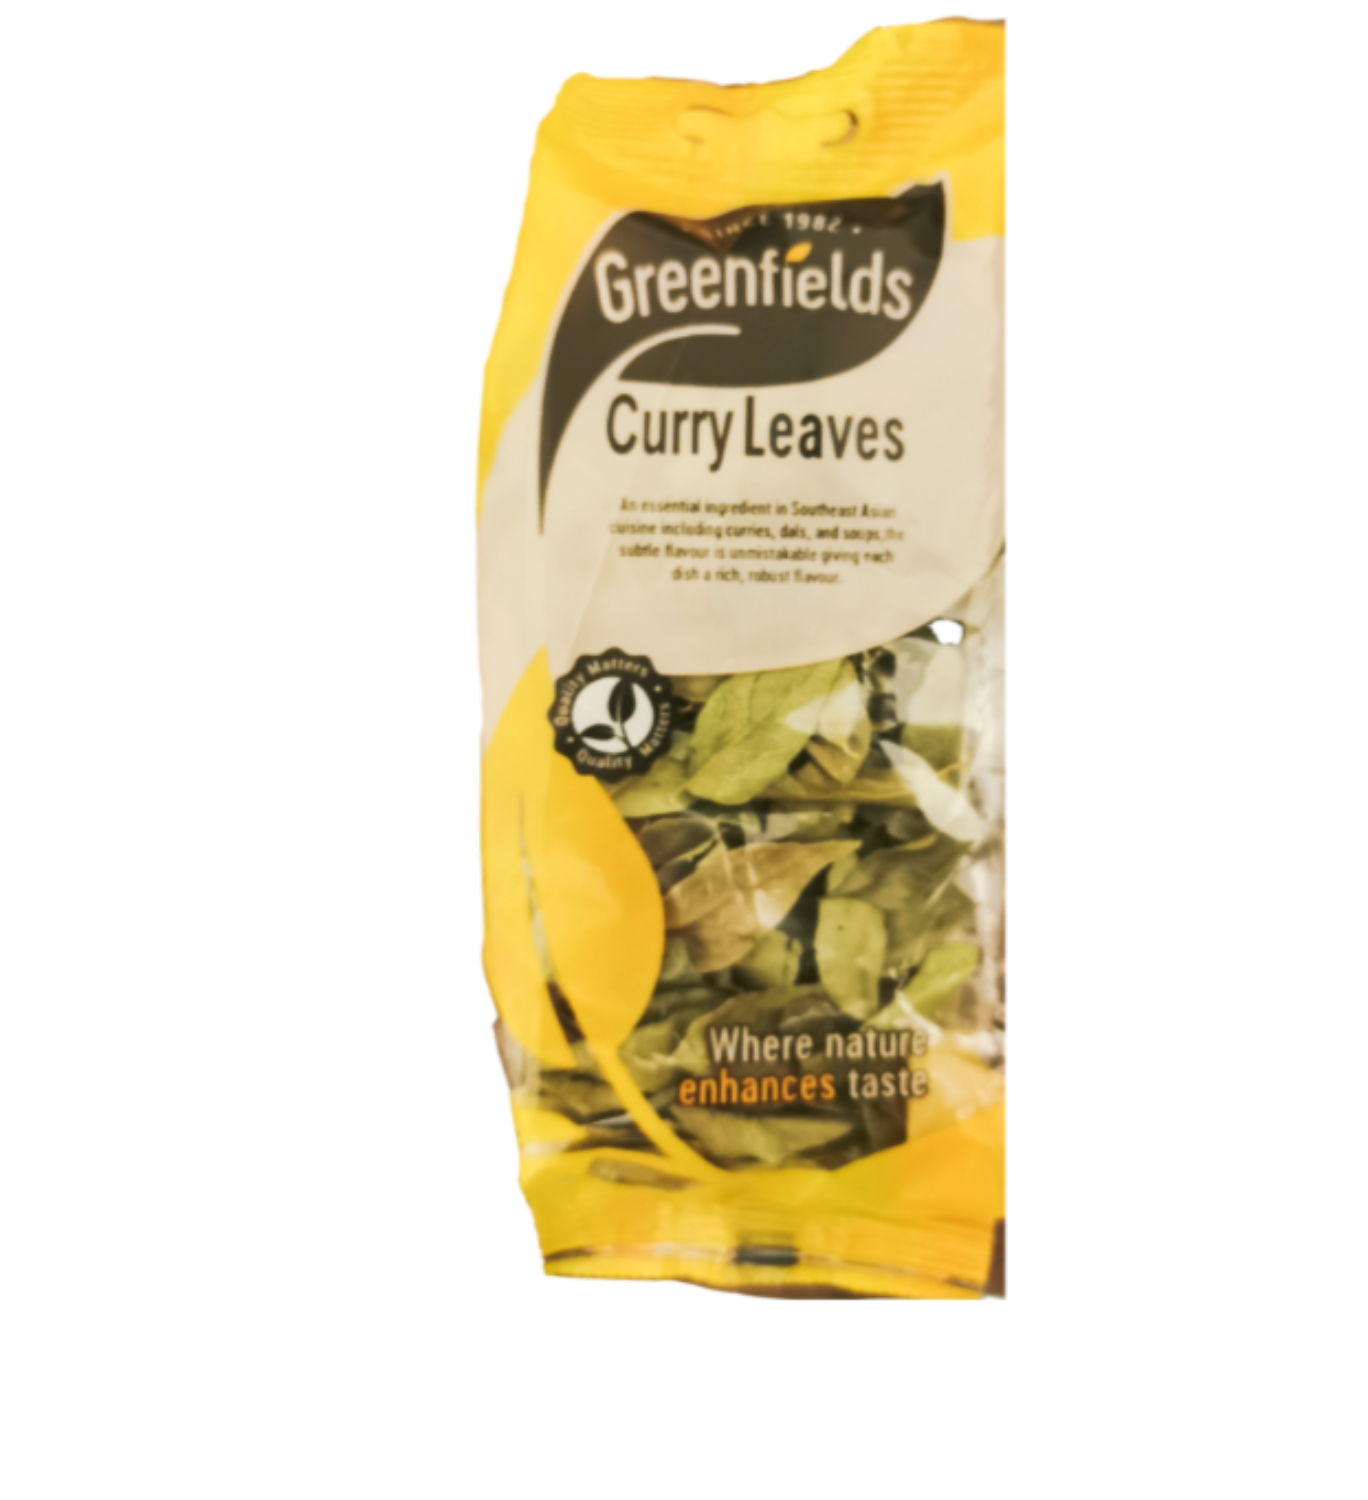 Greenfields Curry Leaves